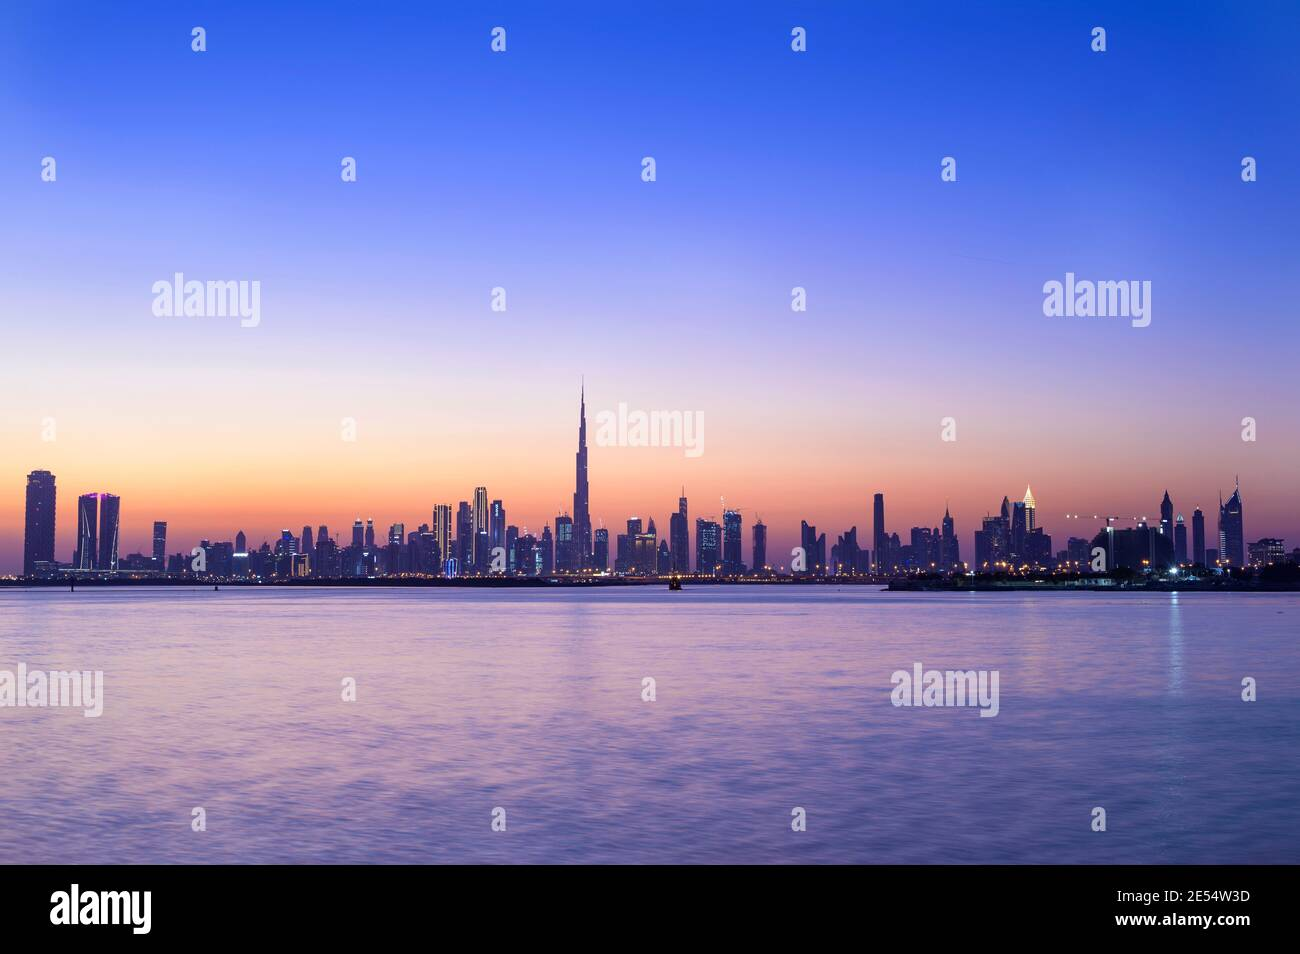 Panaromic view of the Dubai skyline with Burj khalifa and other sky scrapers captured at the sunset with the beautiful blue sky at the Dubai creek Stock Photo